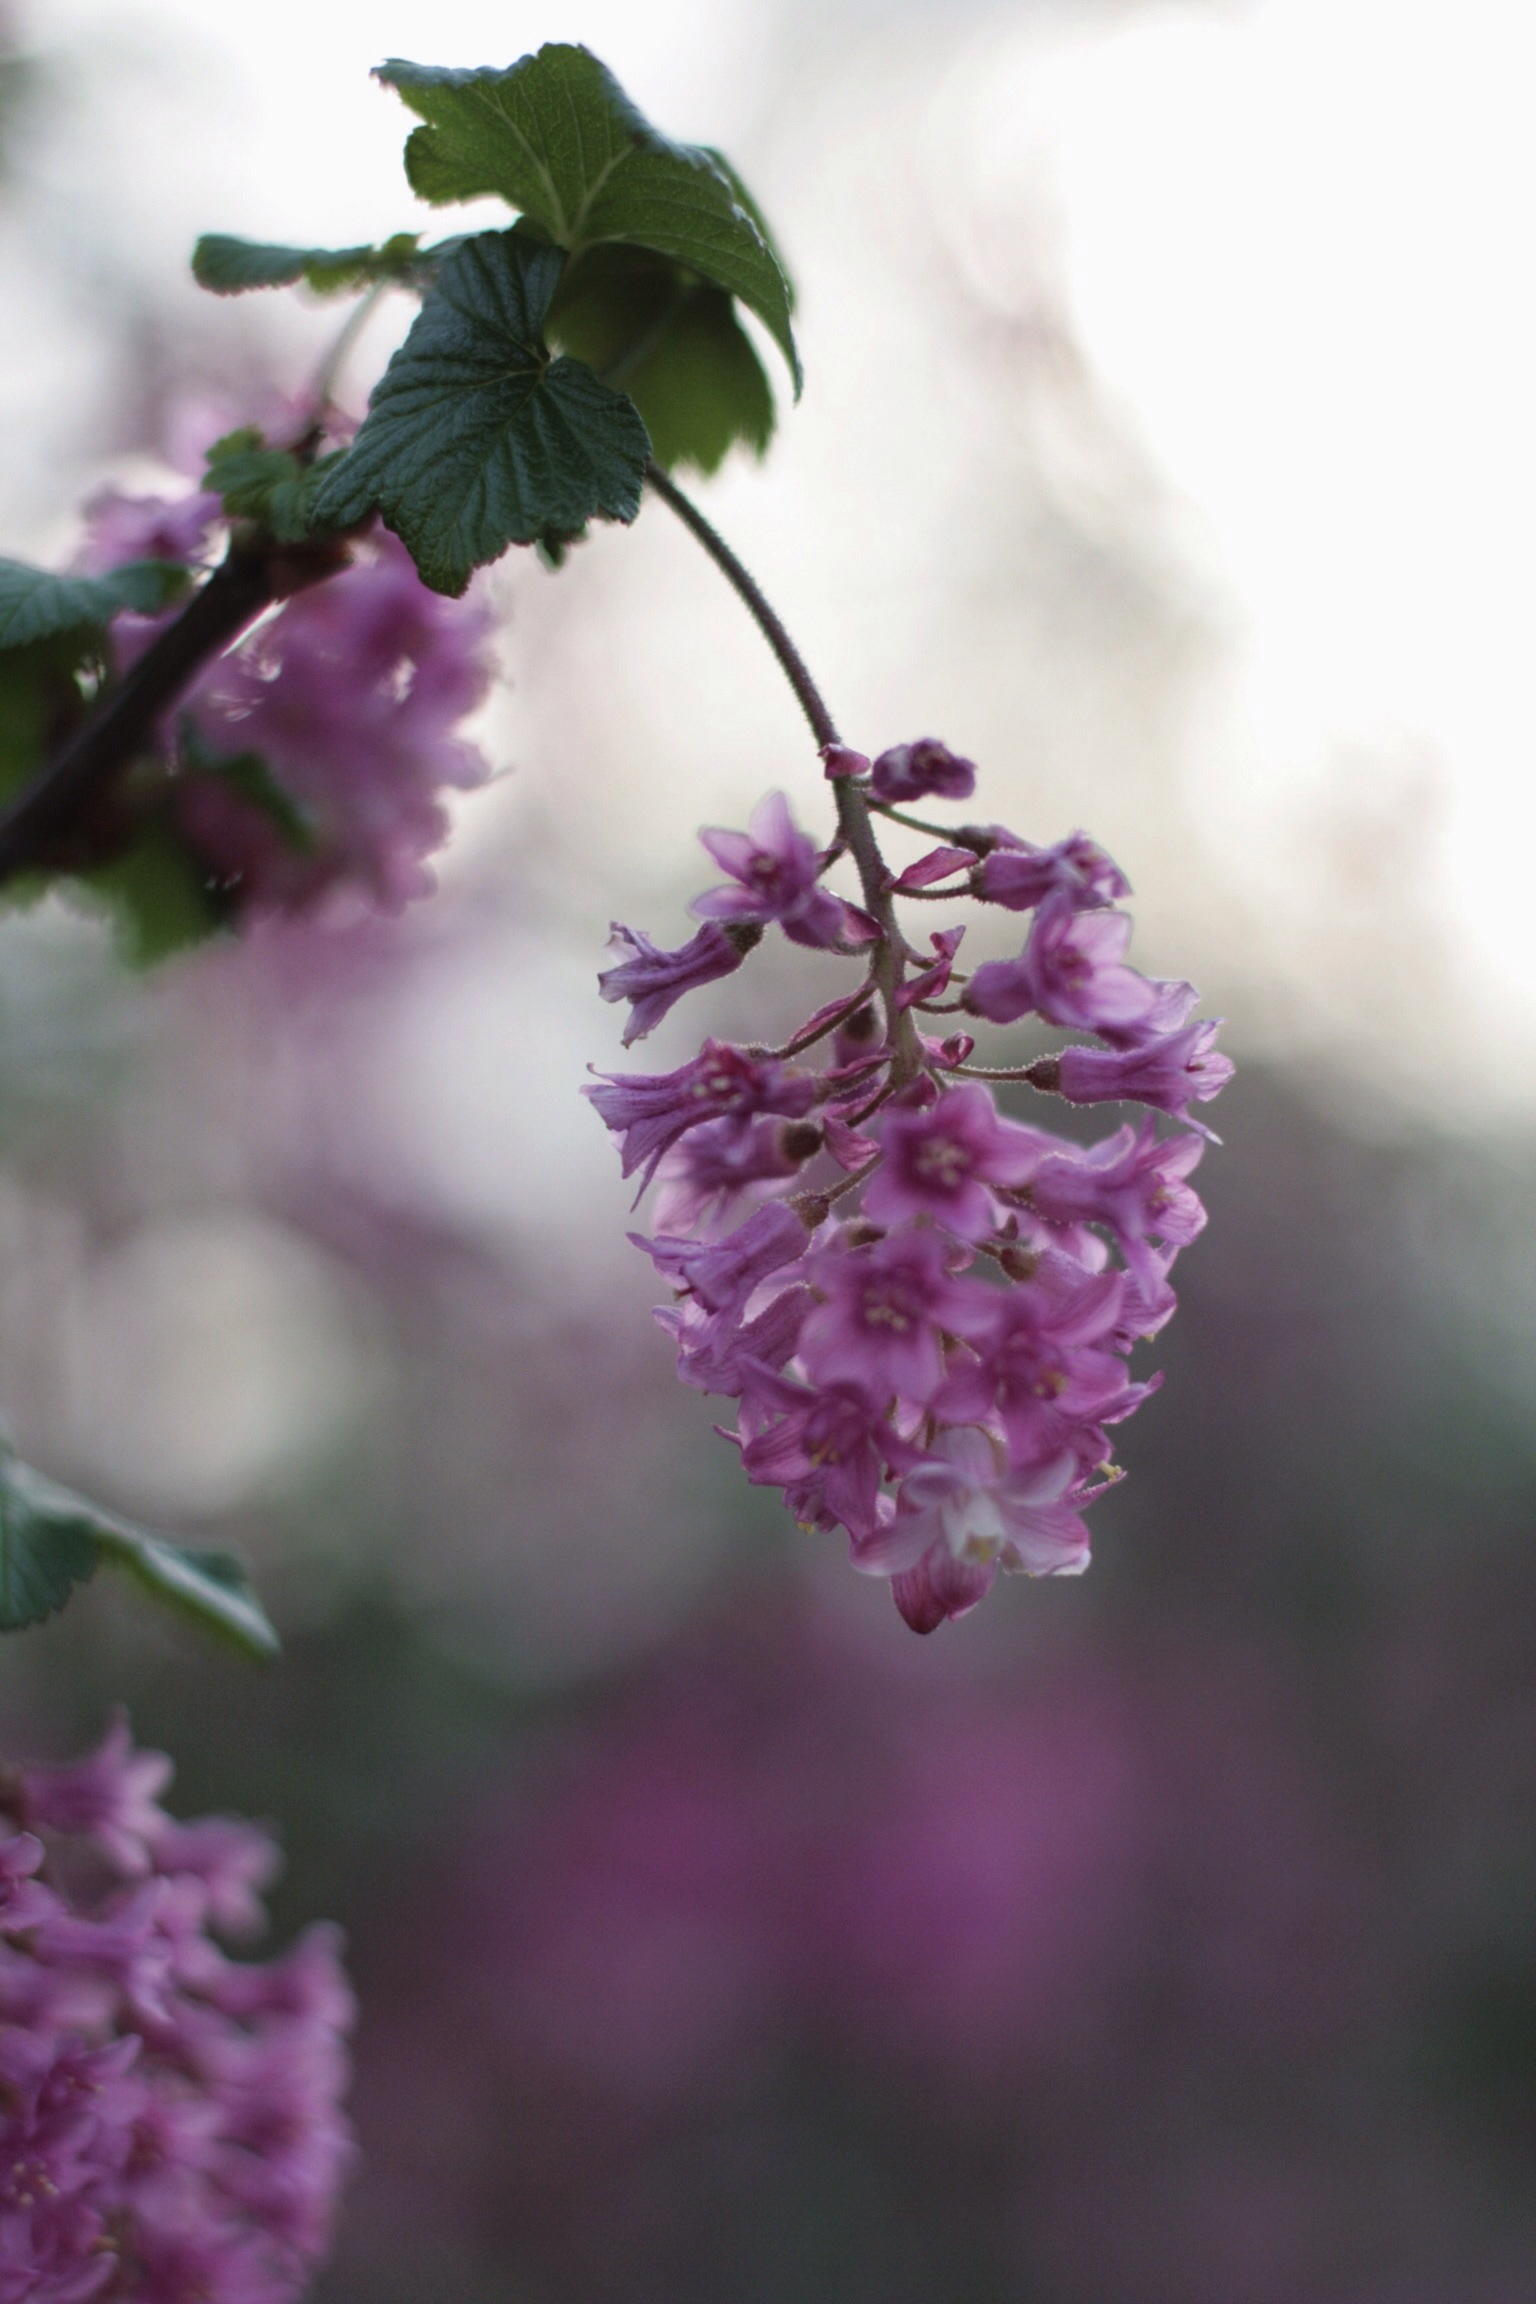 flowering currant -  ribes sangiuneum  at a local cafe